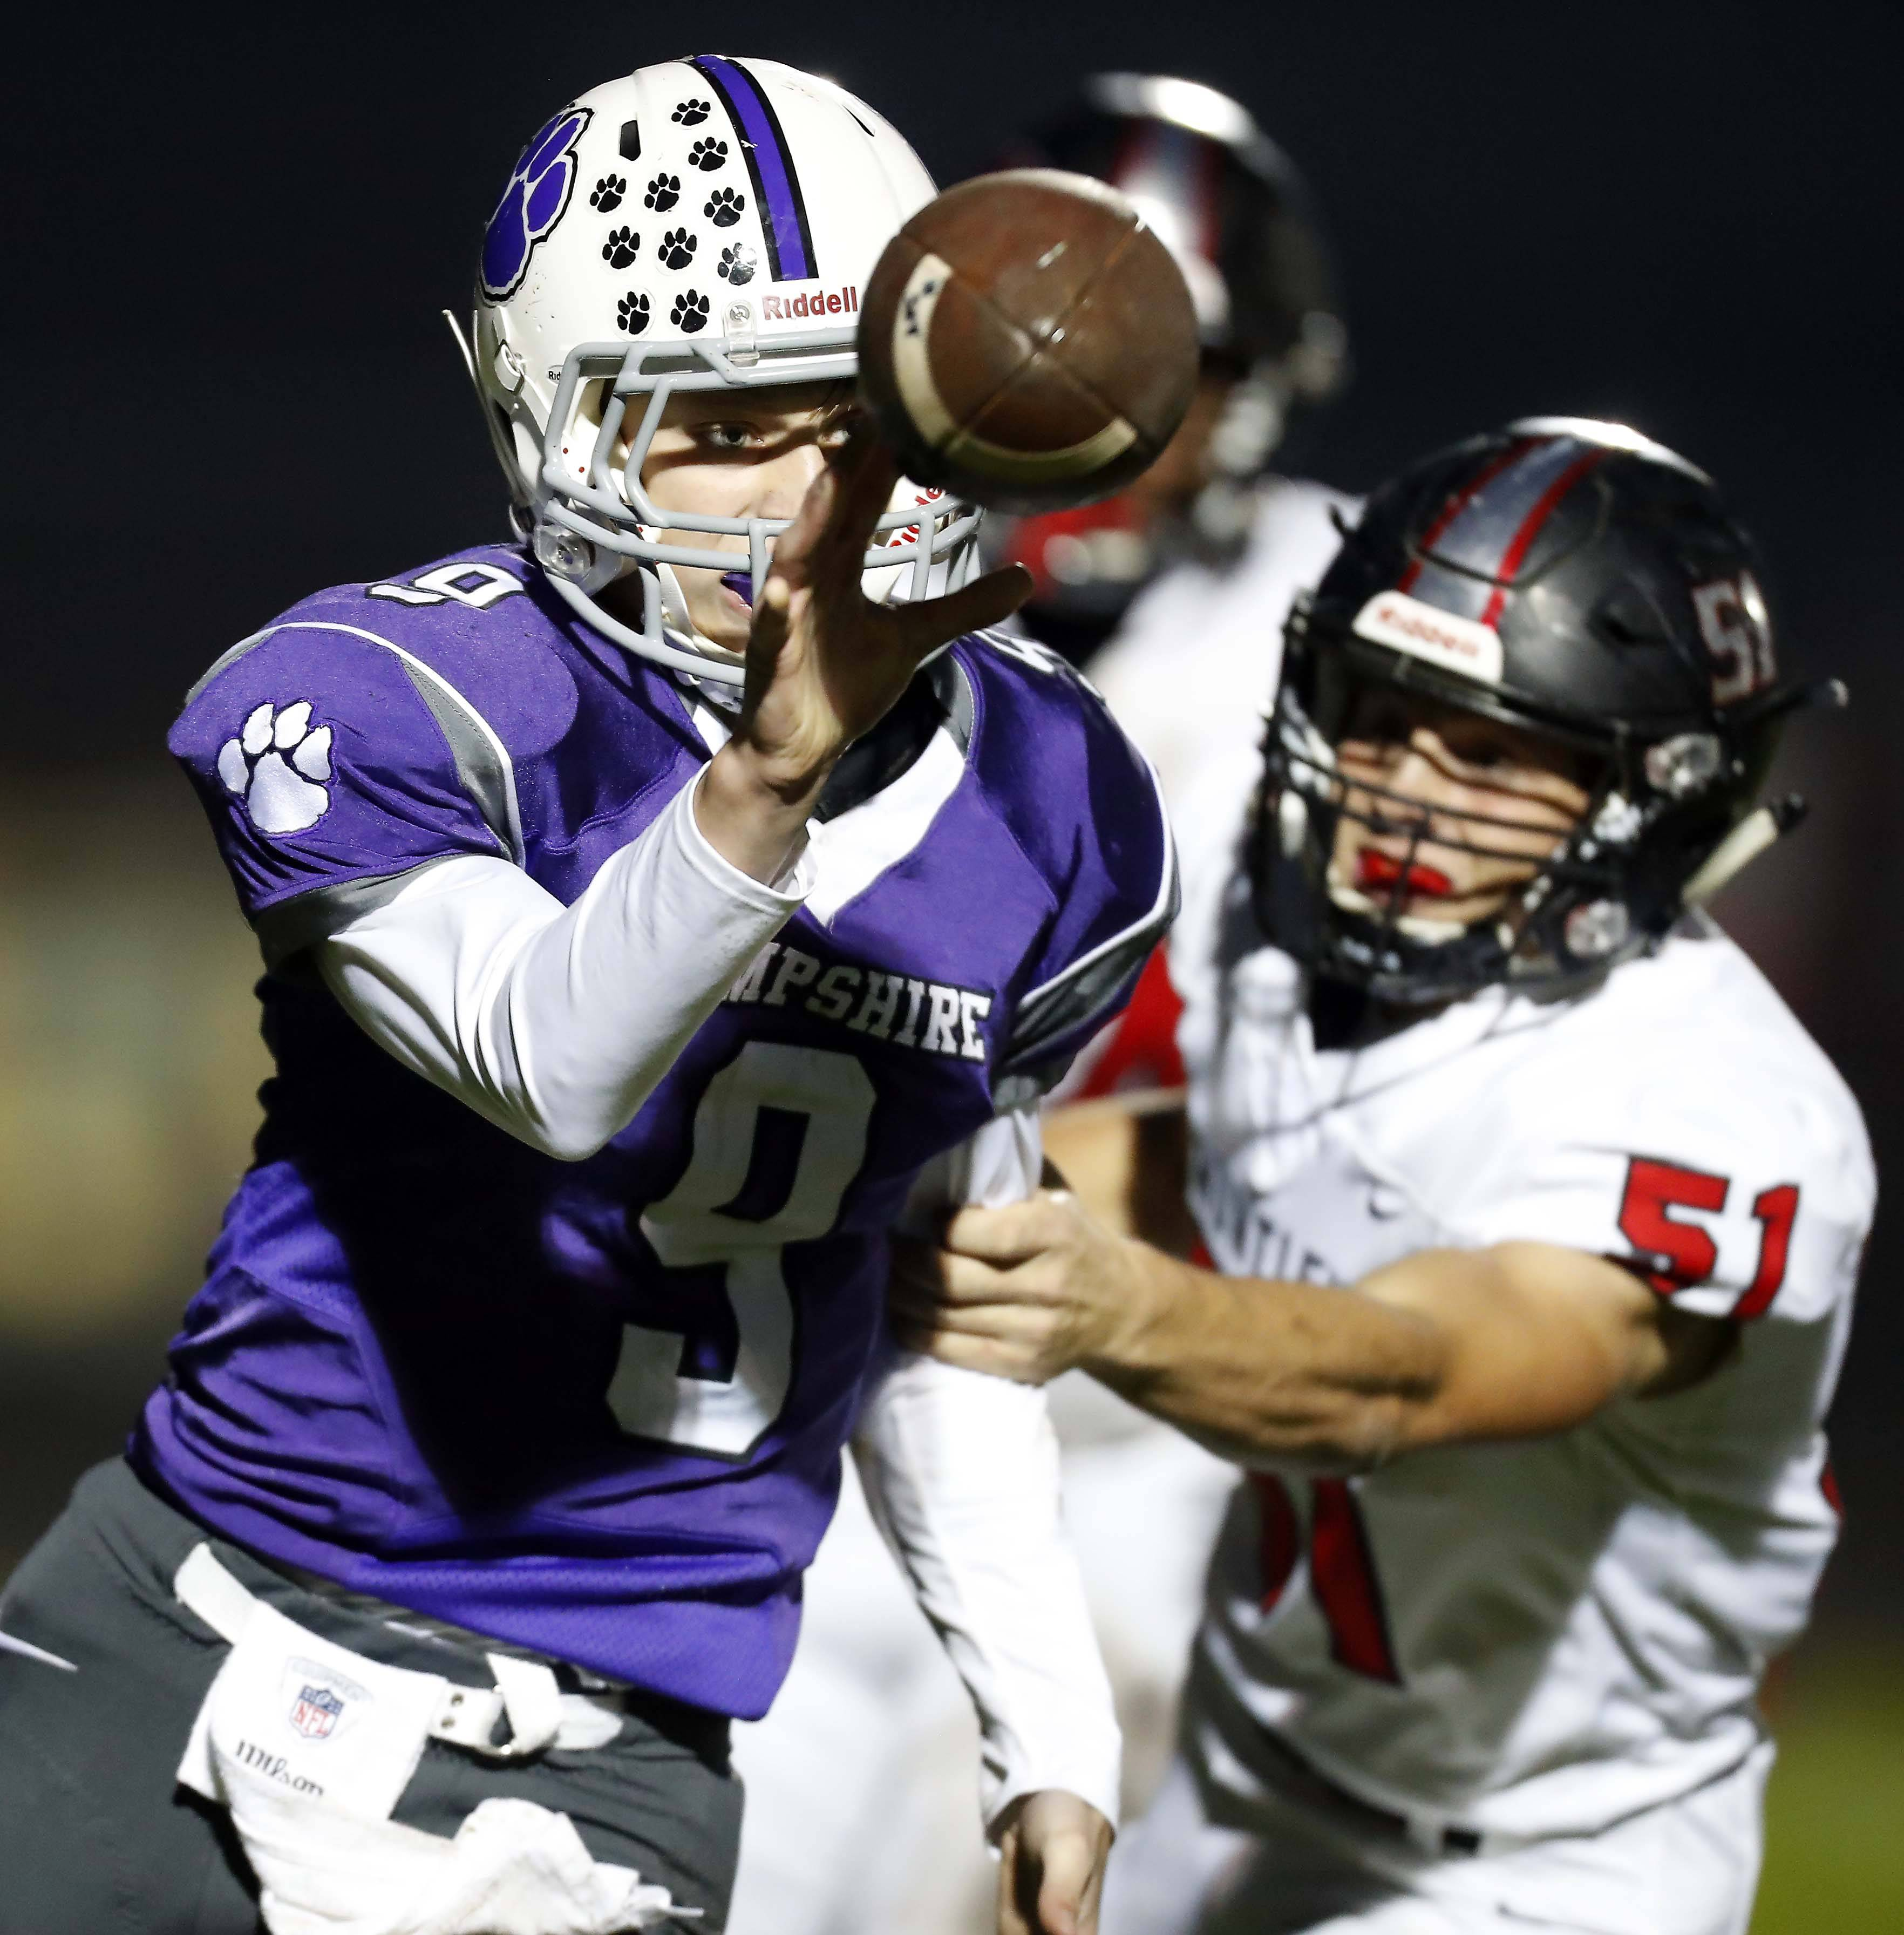 Hampshire's Jackson Milison (9) tosses the ball to his teammate just before Huntley's Zane Lucas (51) gets to him Friday.